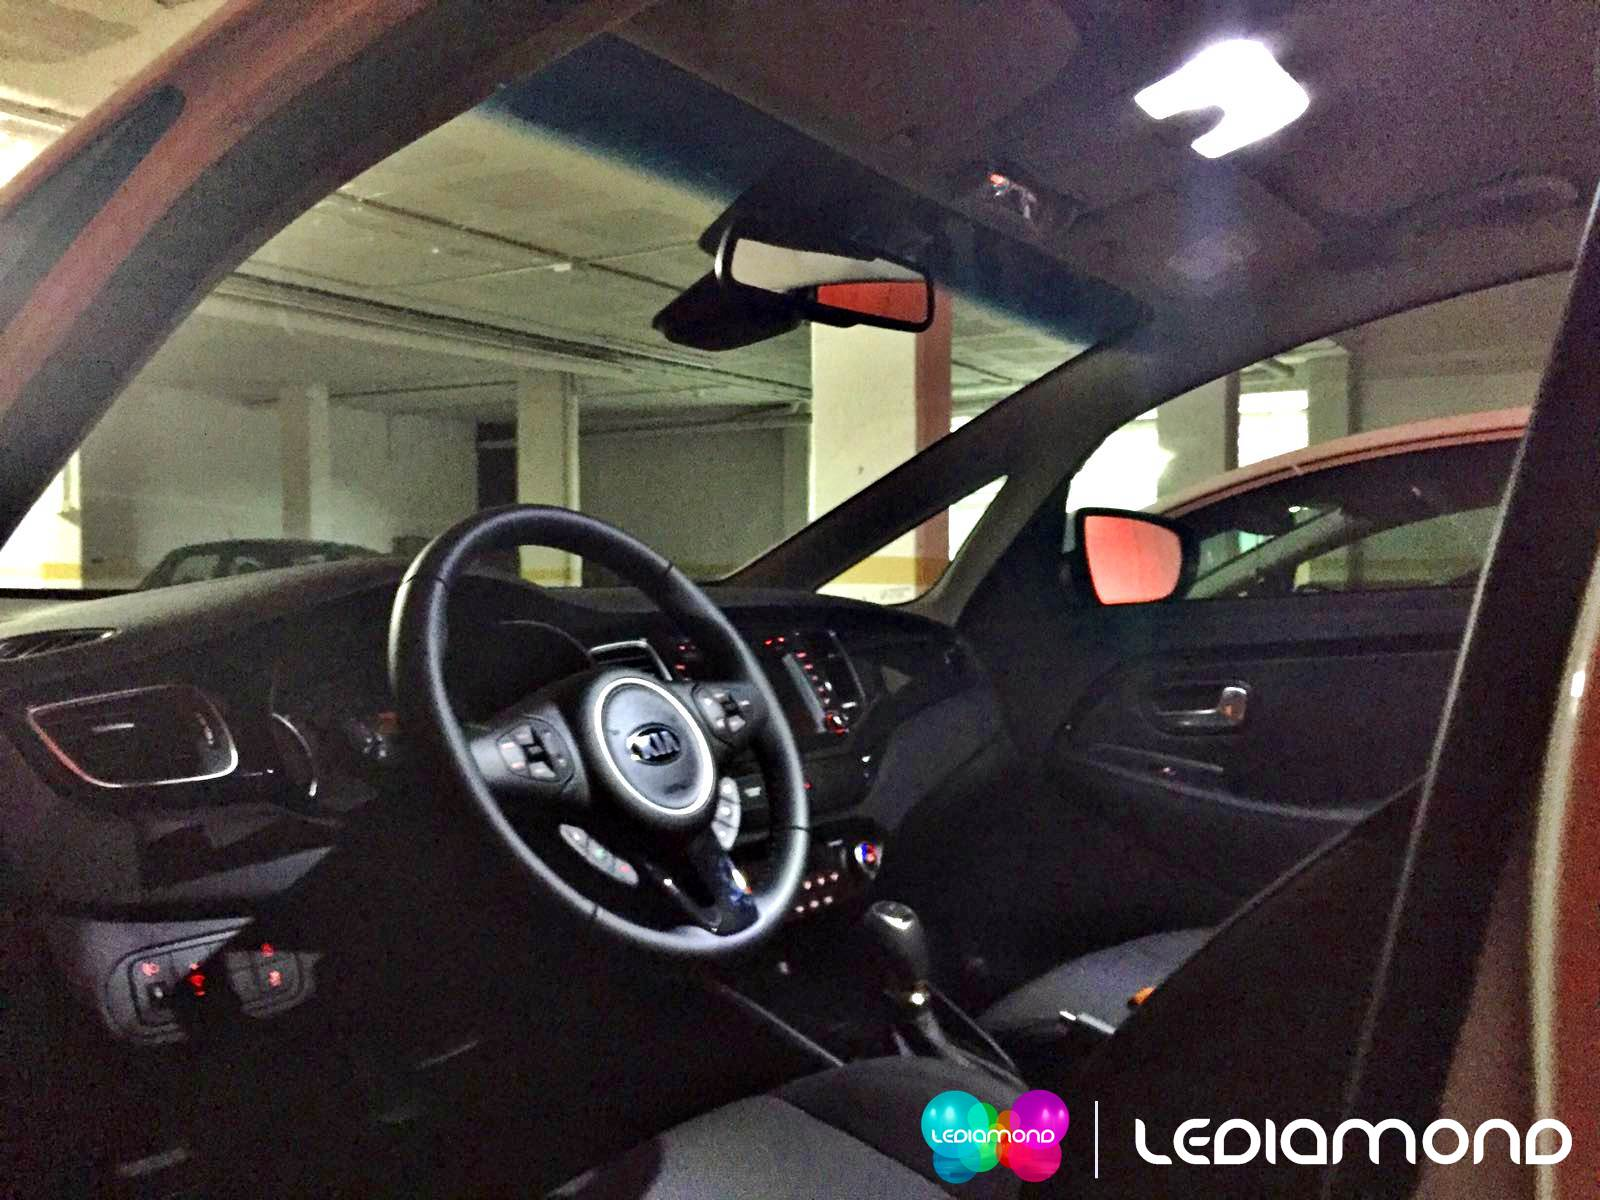 led interior lediamond KIA 2